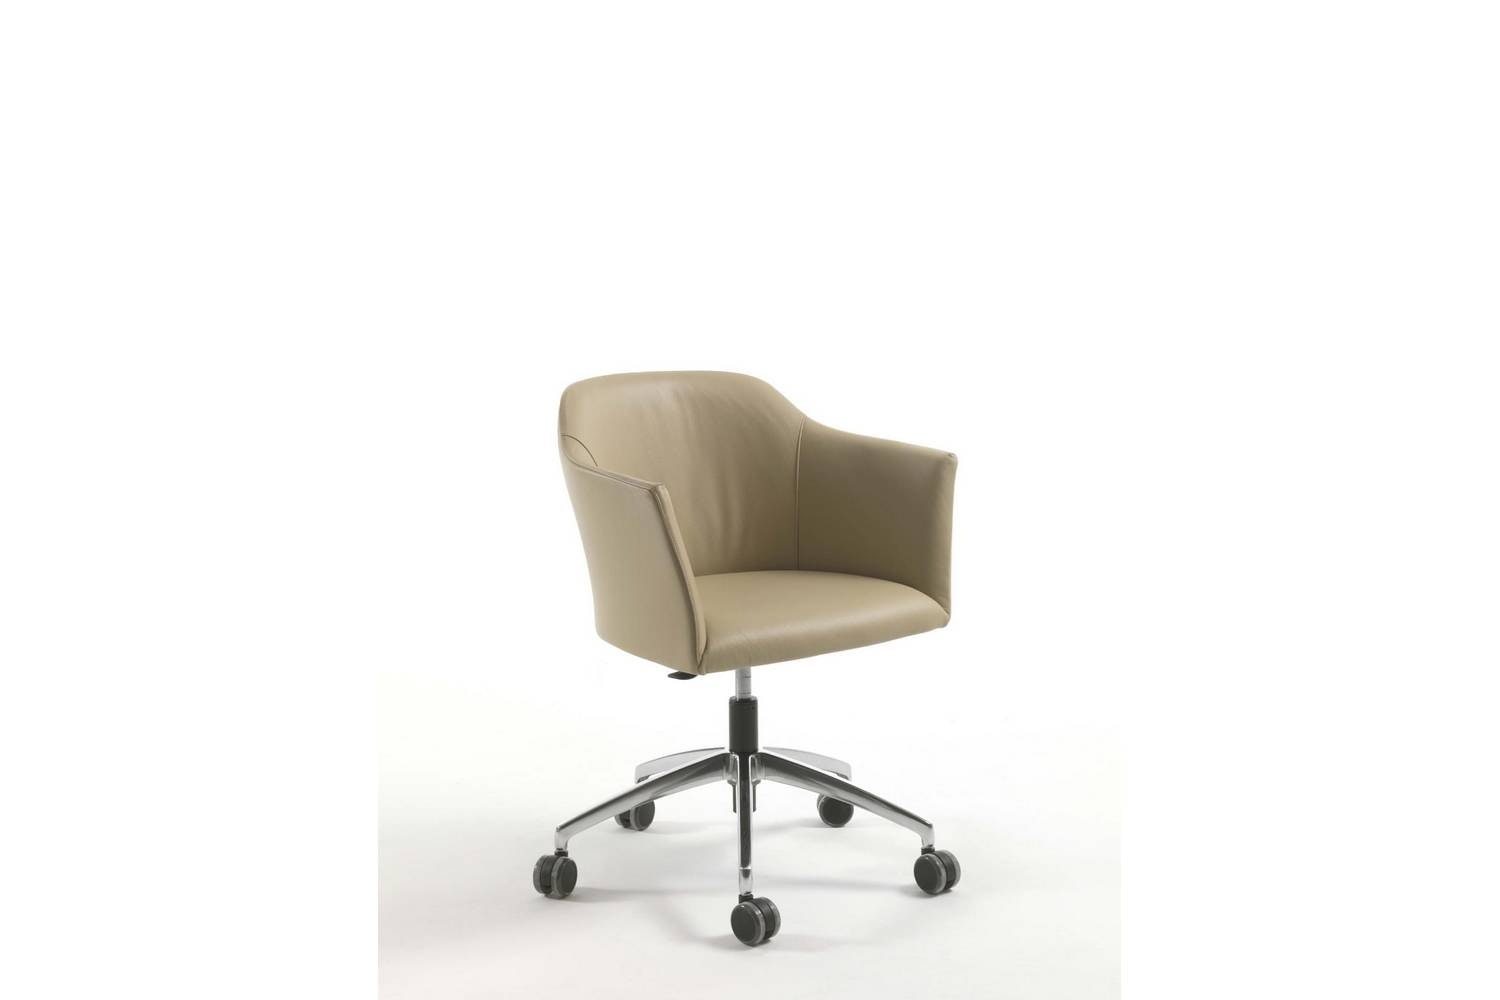 Heather Swivel Chair by G. Carollo for Porada